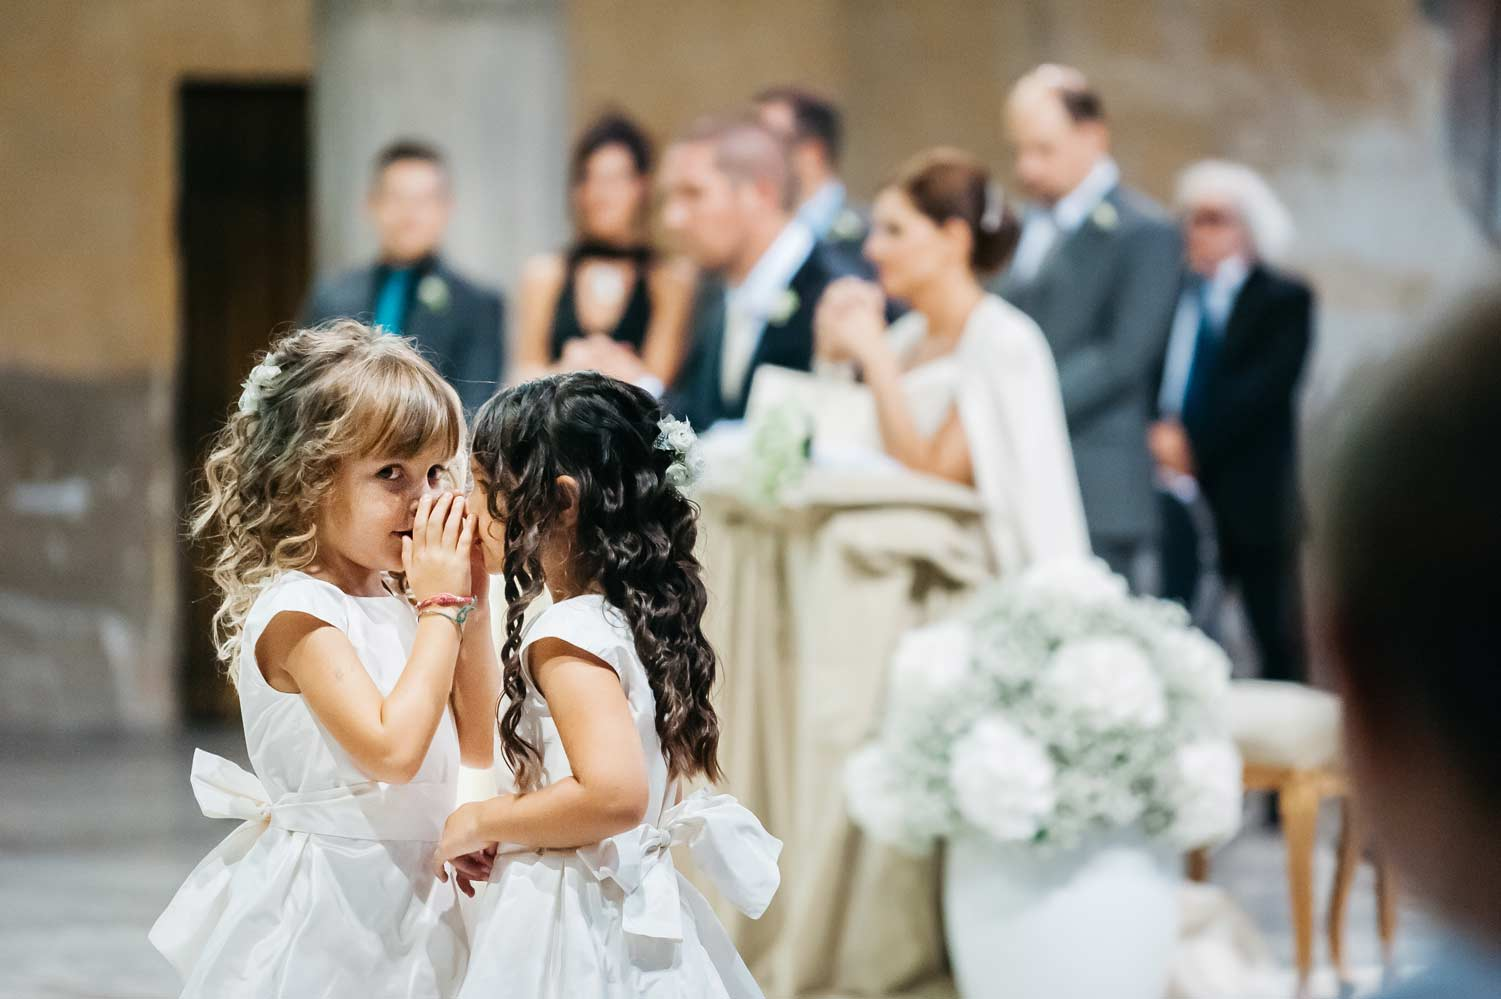 Reportage-Wedding-Photography-in-Rome-Ceremony